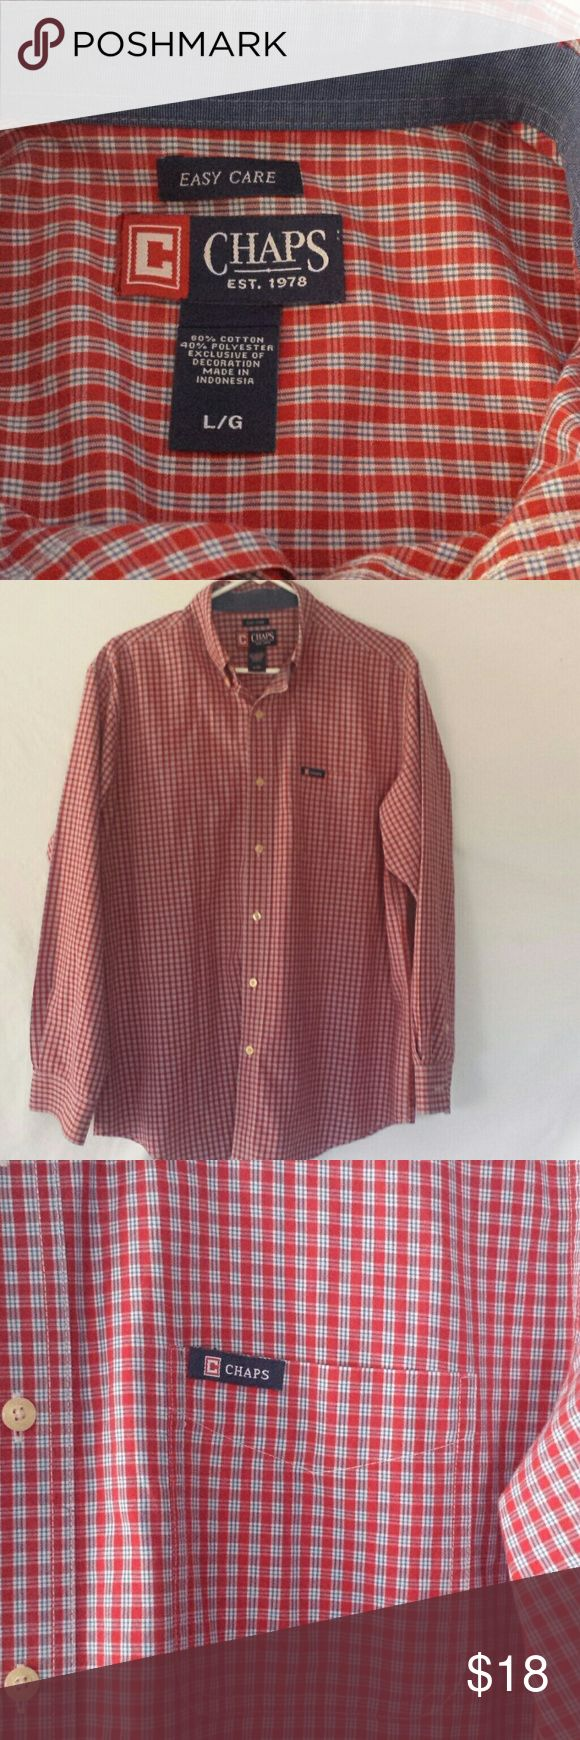 """EASY CARE CHAPS SHIRT Red white and blue Chaps Shirt. Approx. 24"""" sleeve. Excellent shape!! Chaps Shirts Casual Button Down Shirts"""